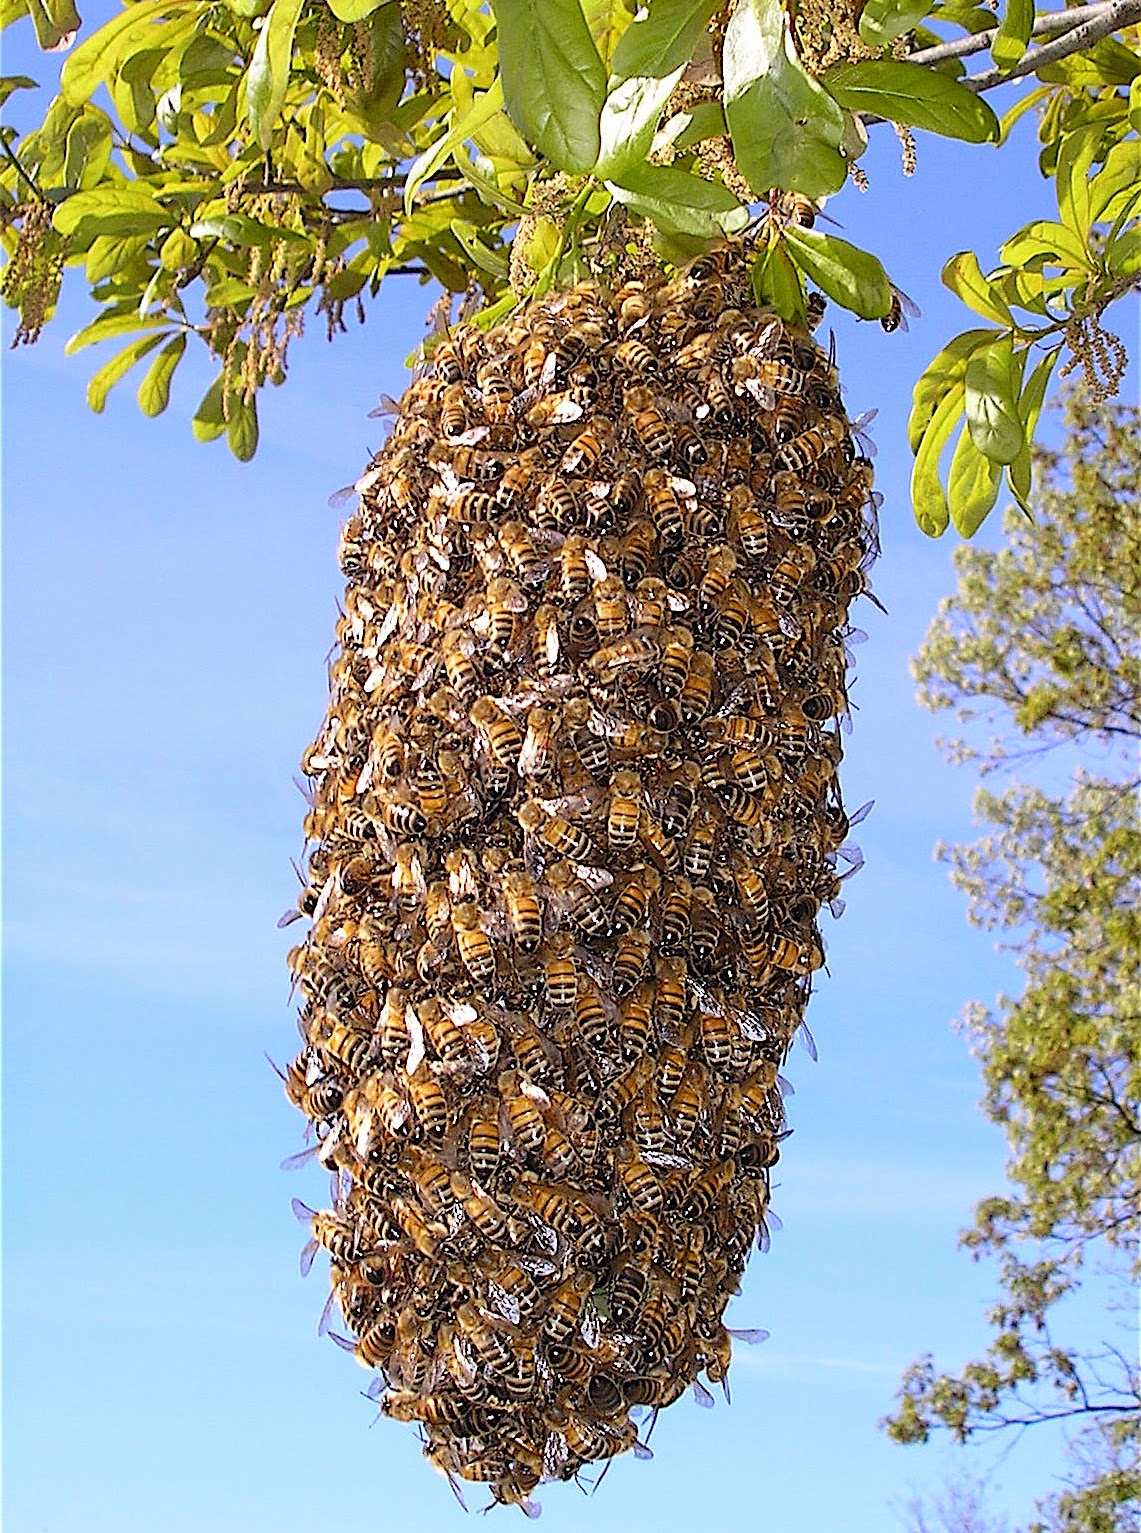 Swarming (honey bee) - Bee swarm on tree branch